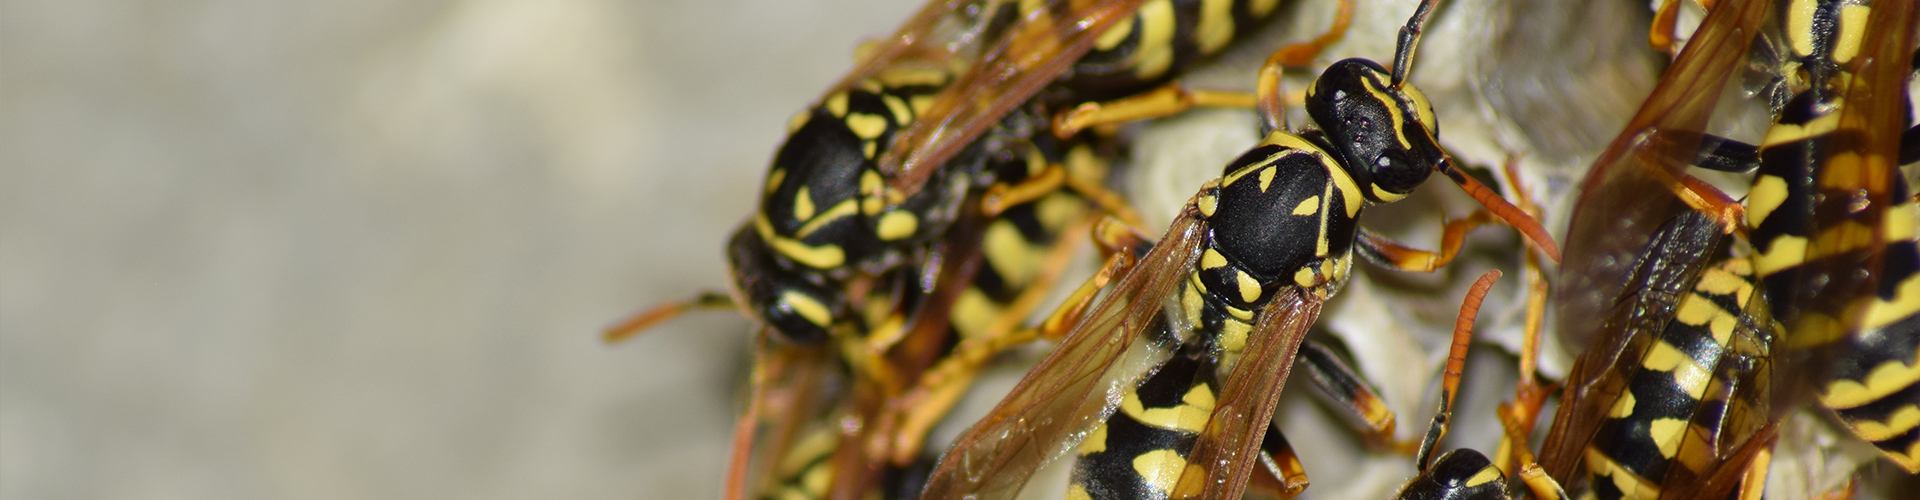 How To Treat A Wasp Sting